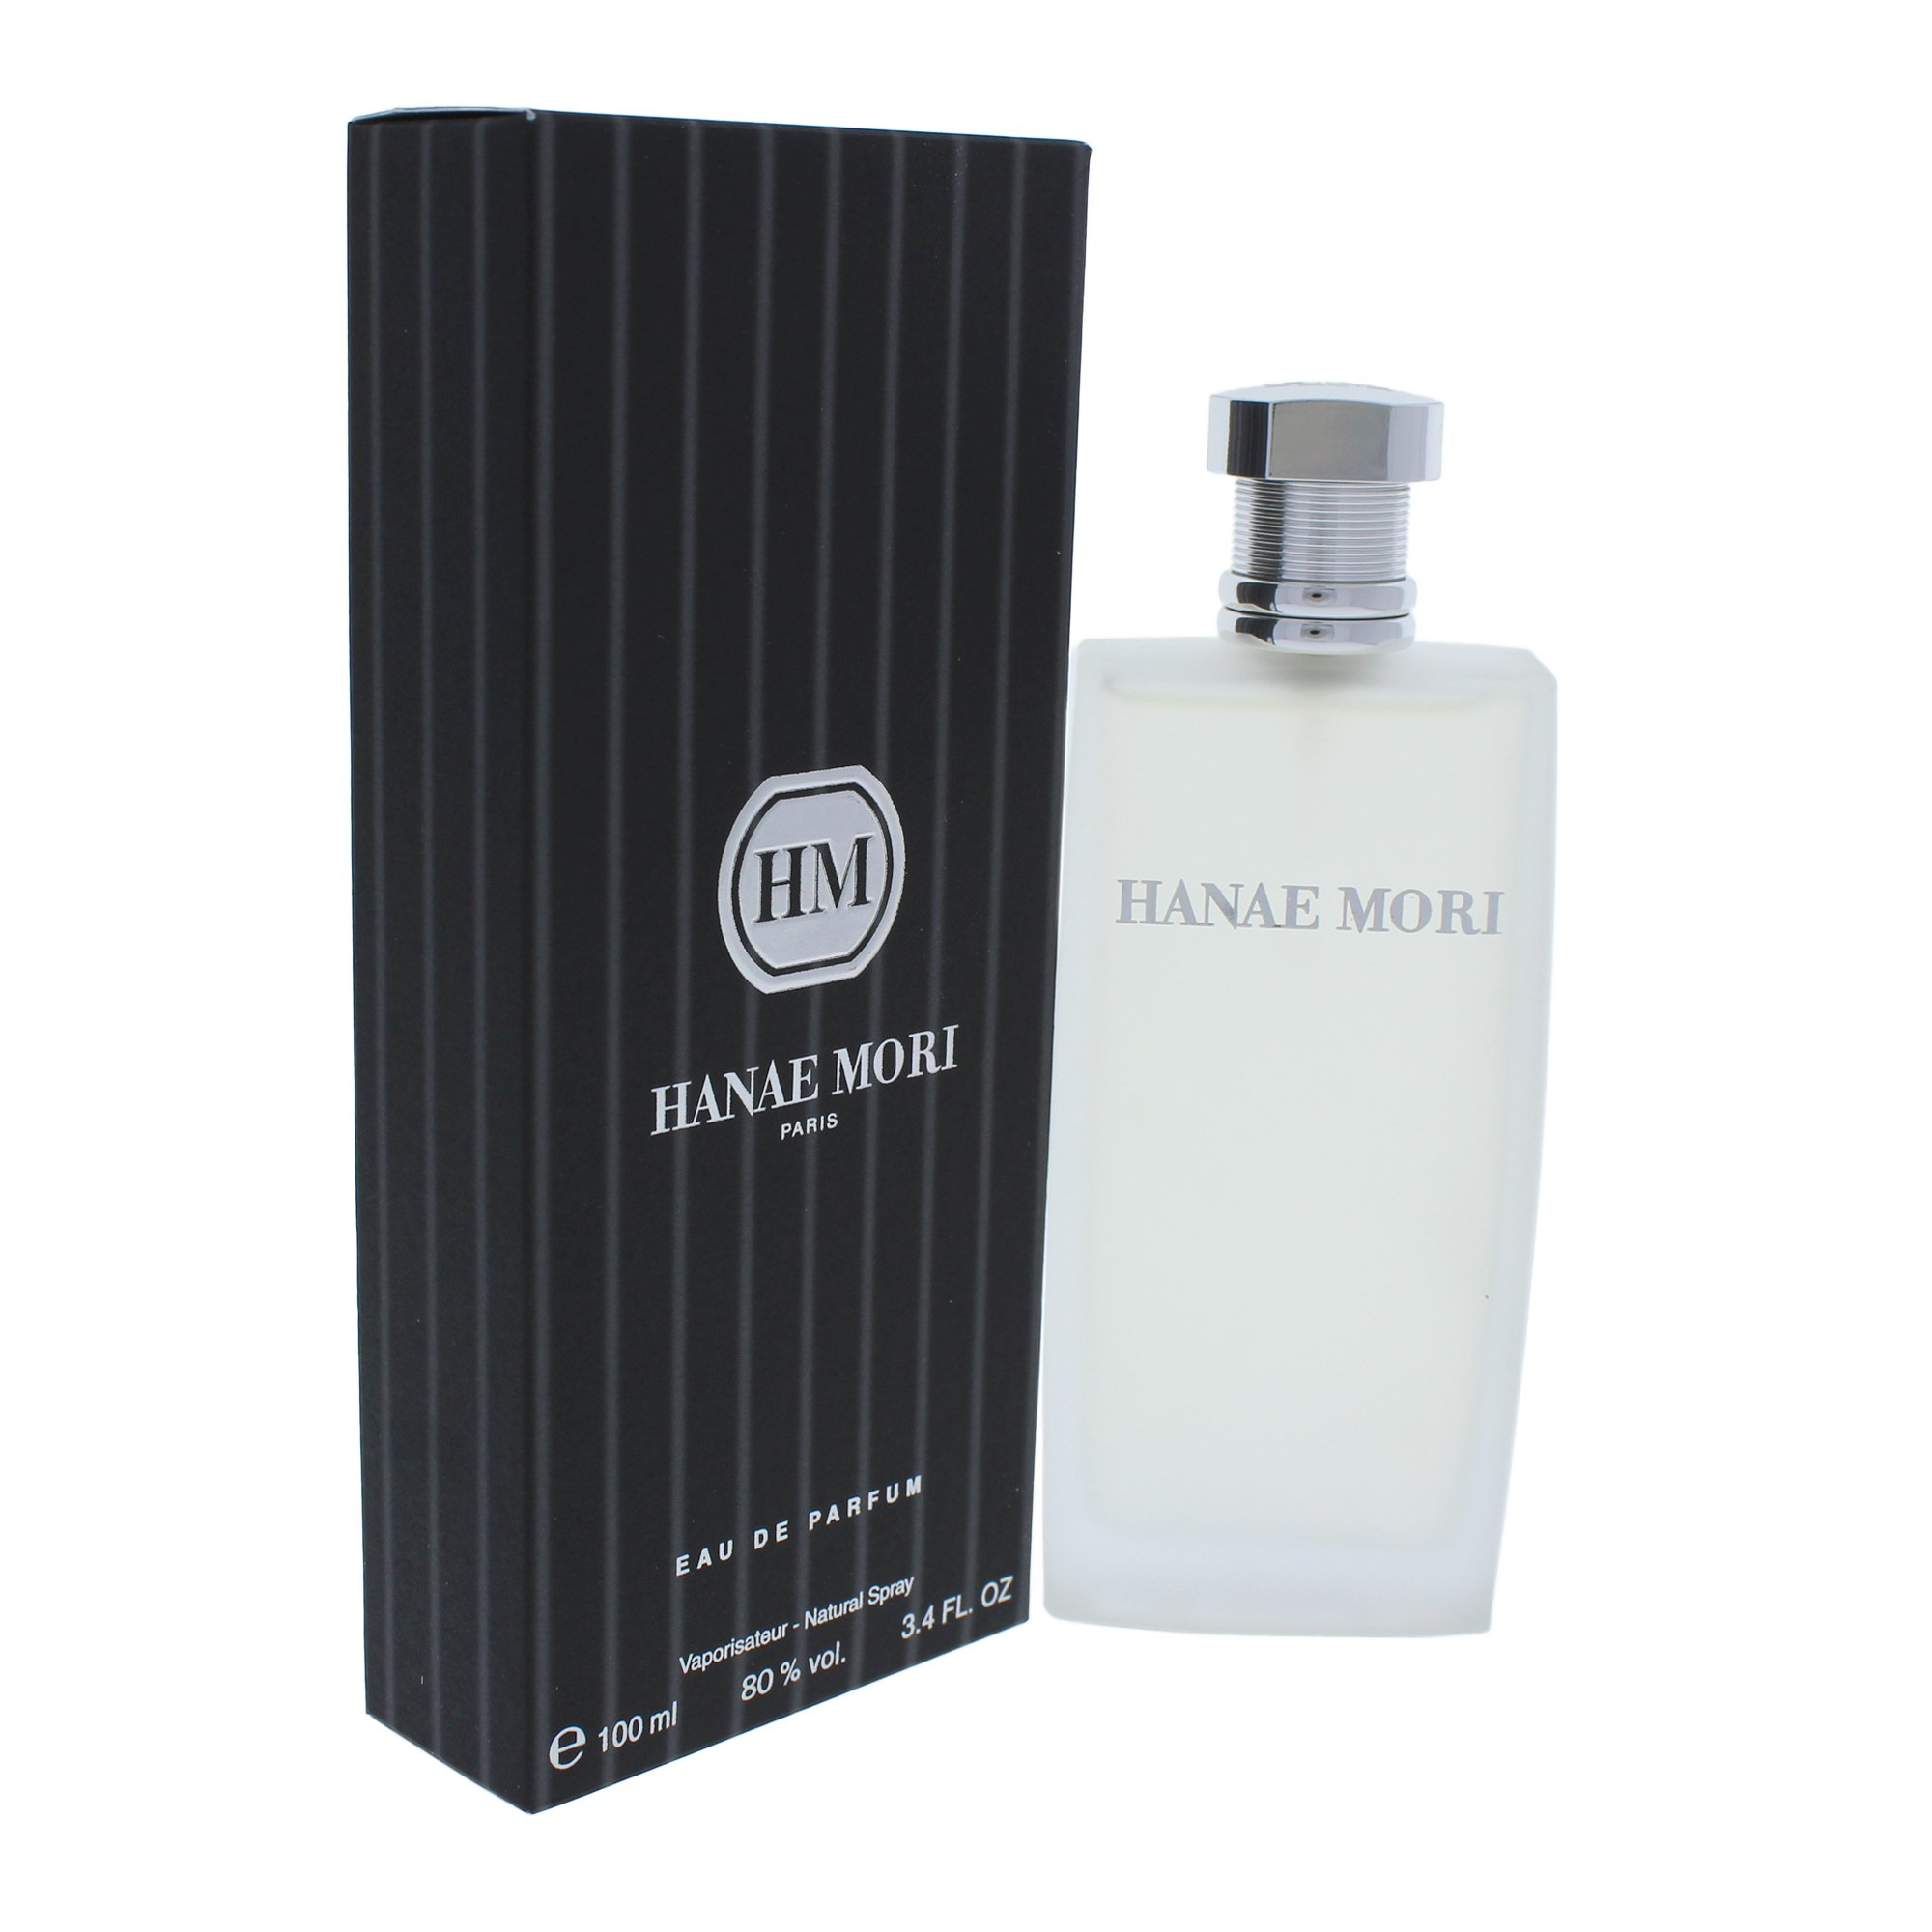 HM by Hanae Mori | Eau de Parfum Spray | Fragrance for Men | Citrusy and Woodsy Scent is Powerful, Pure, and Inviting | 100 mL / 3.4 fl oz by HANAE MORI (HANFW)